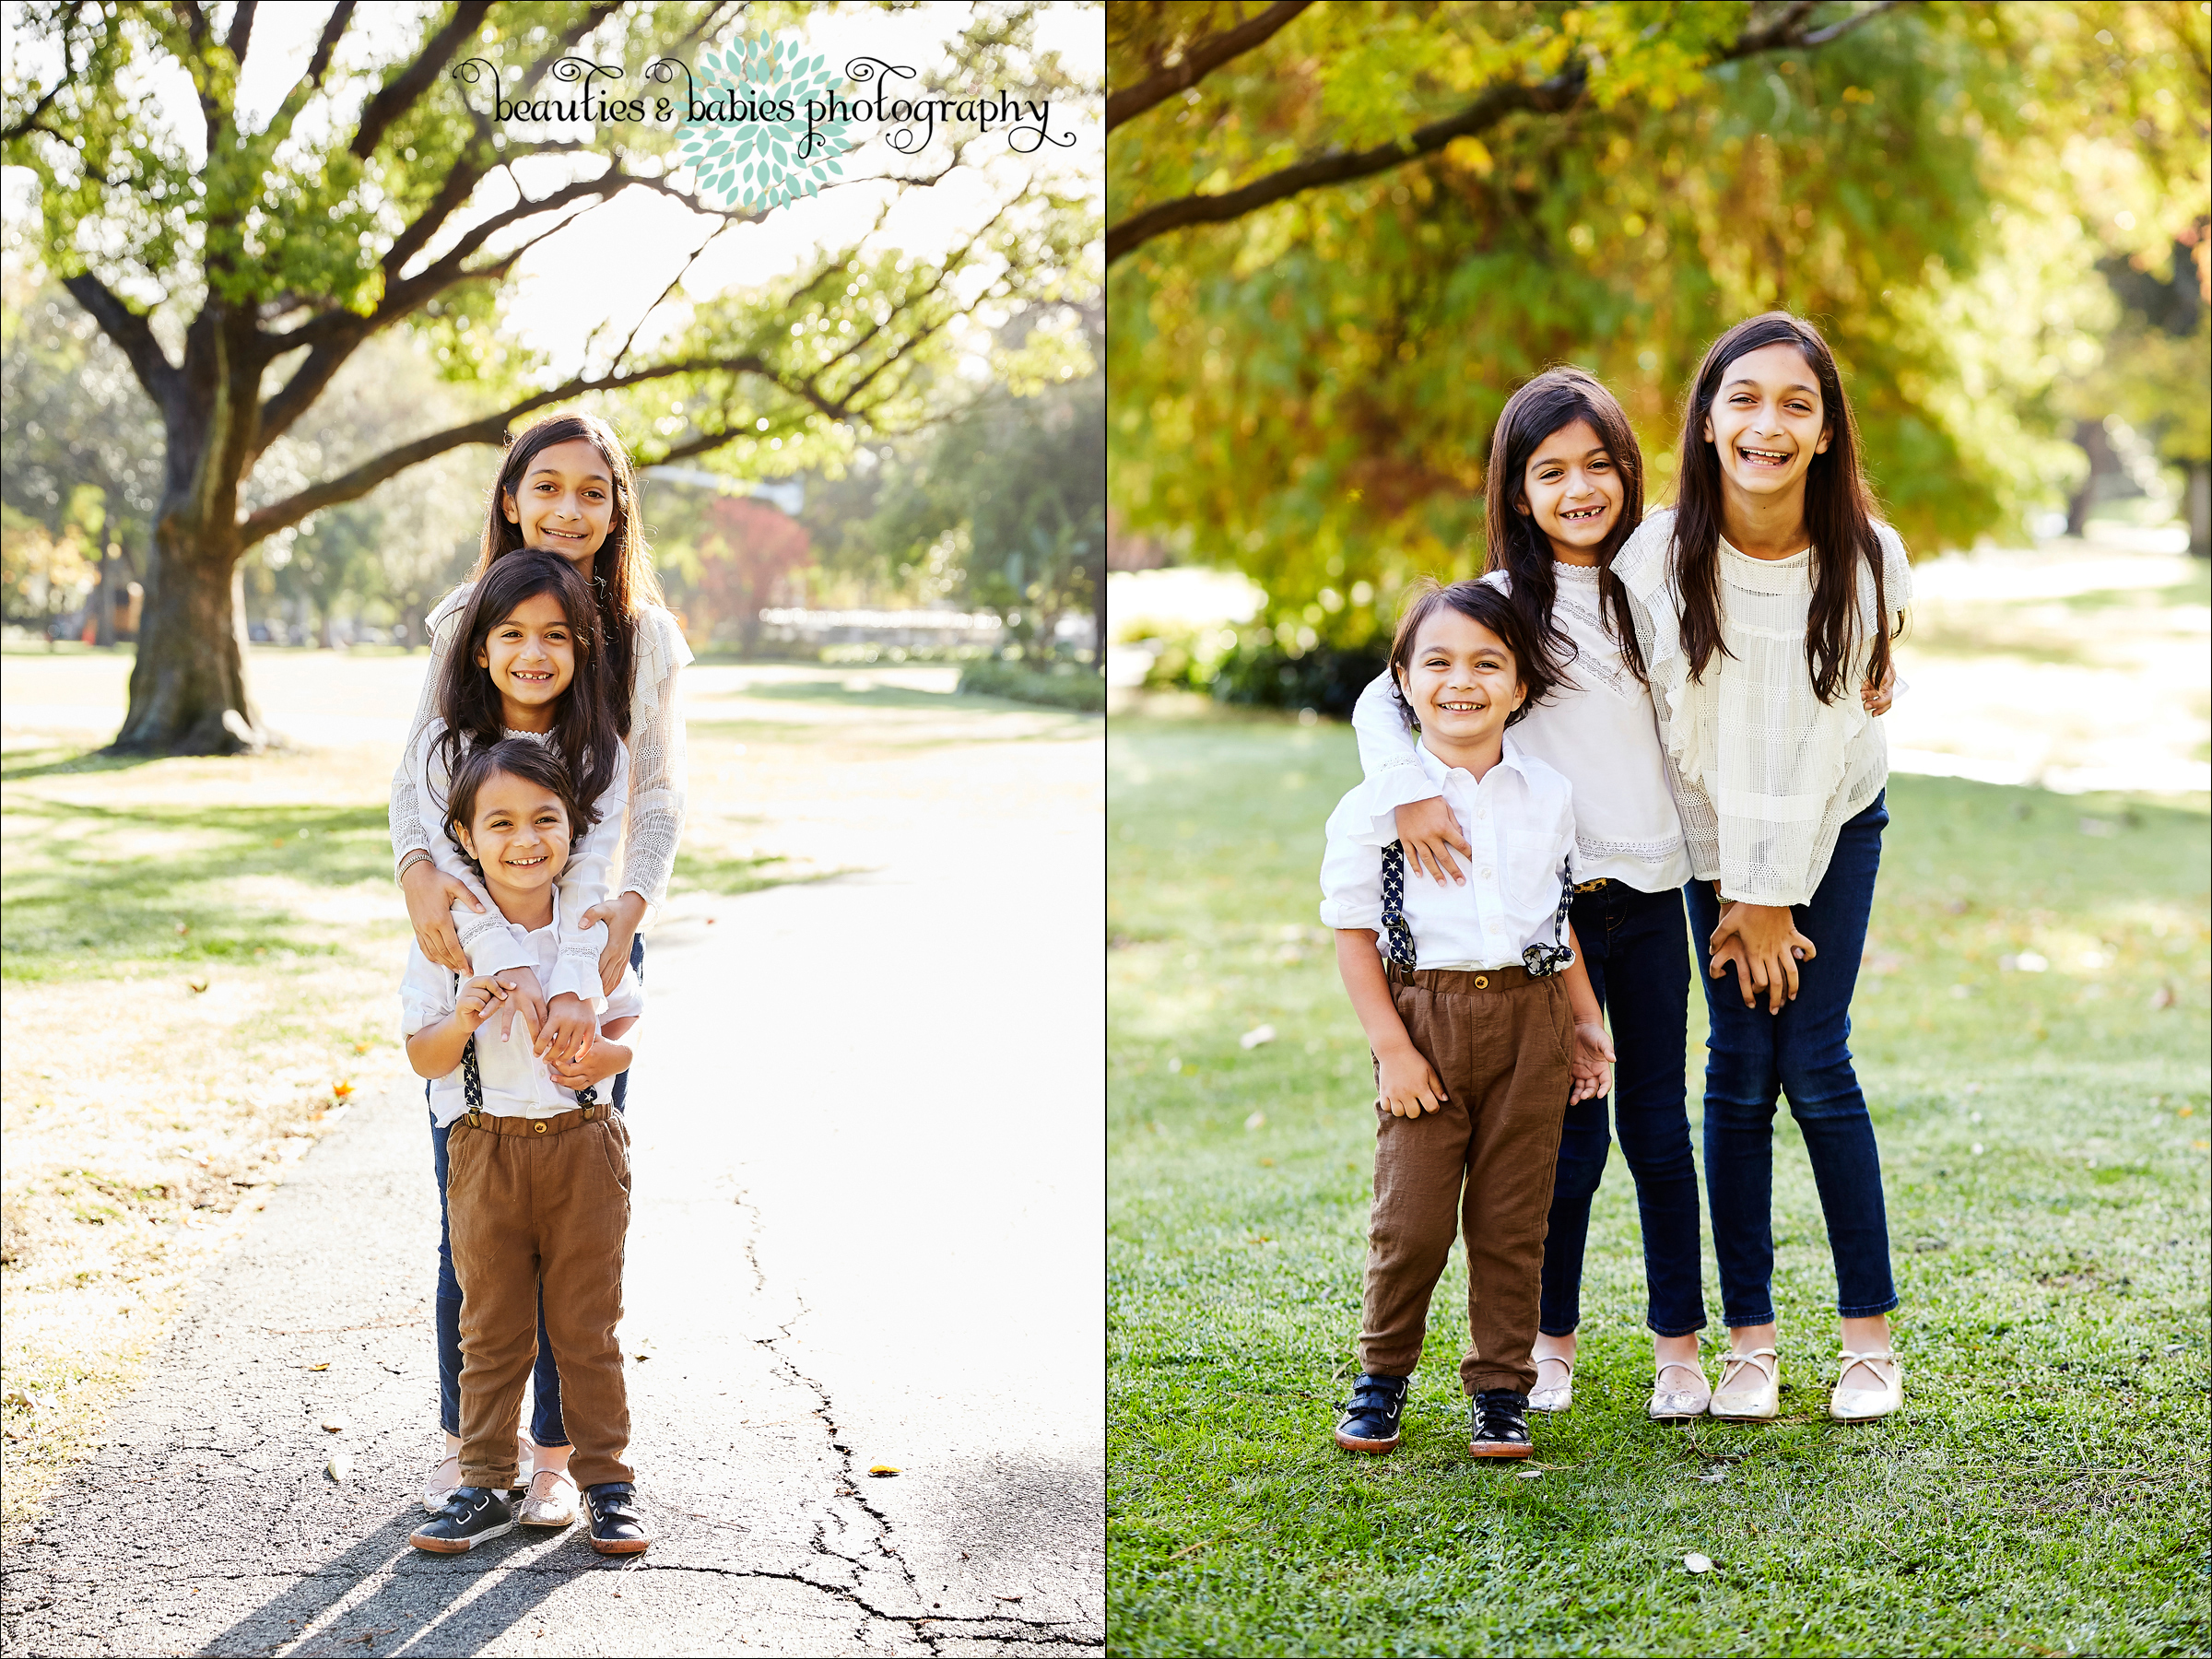 West Los Angeles Family Photographer, kids photography Los Angeles, professional photographer Los Angeles, best family photography West LA